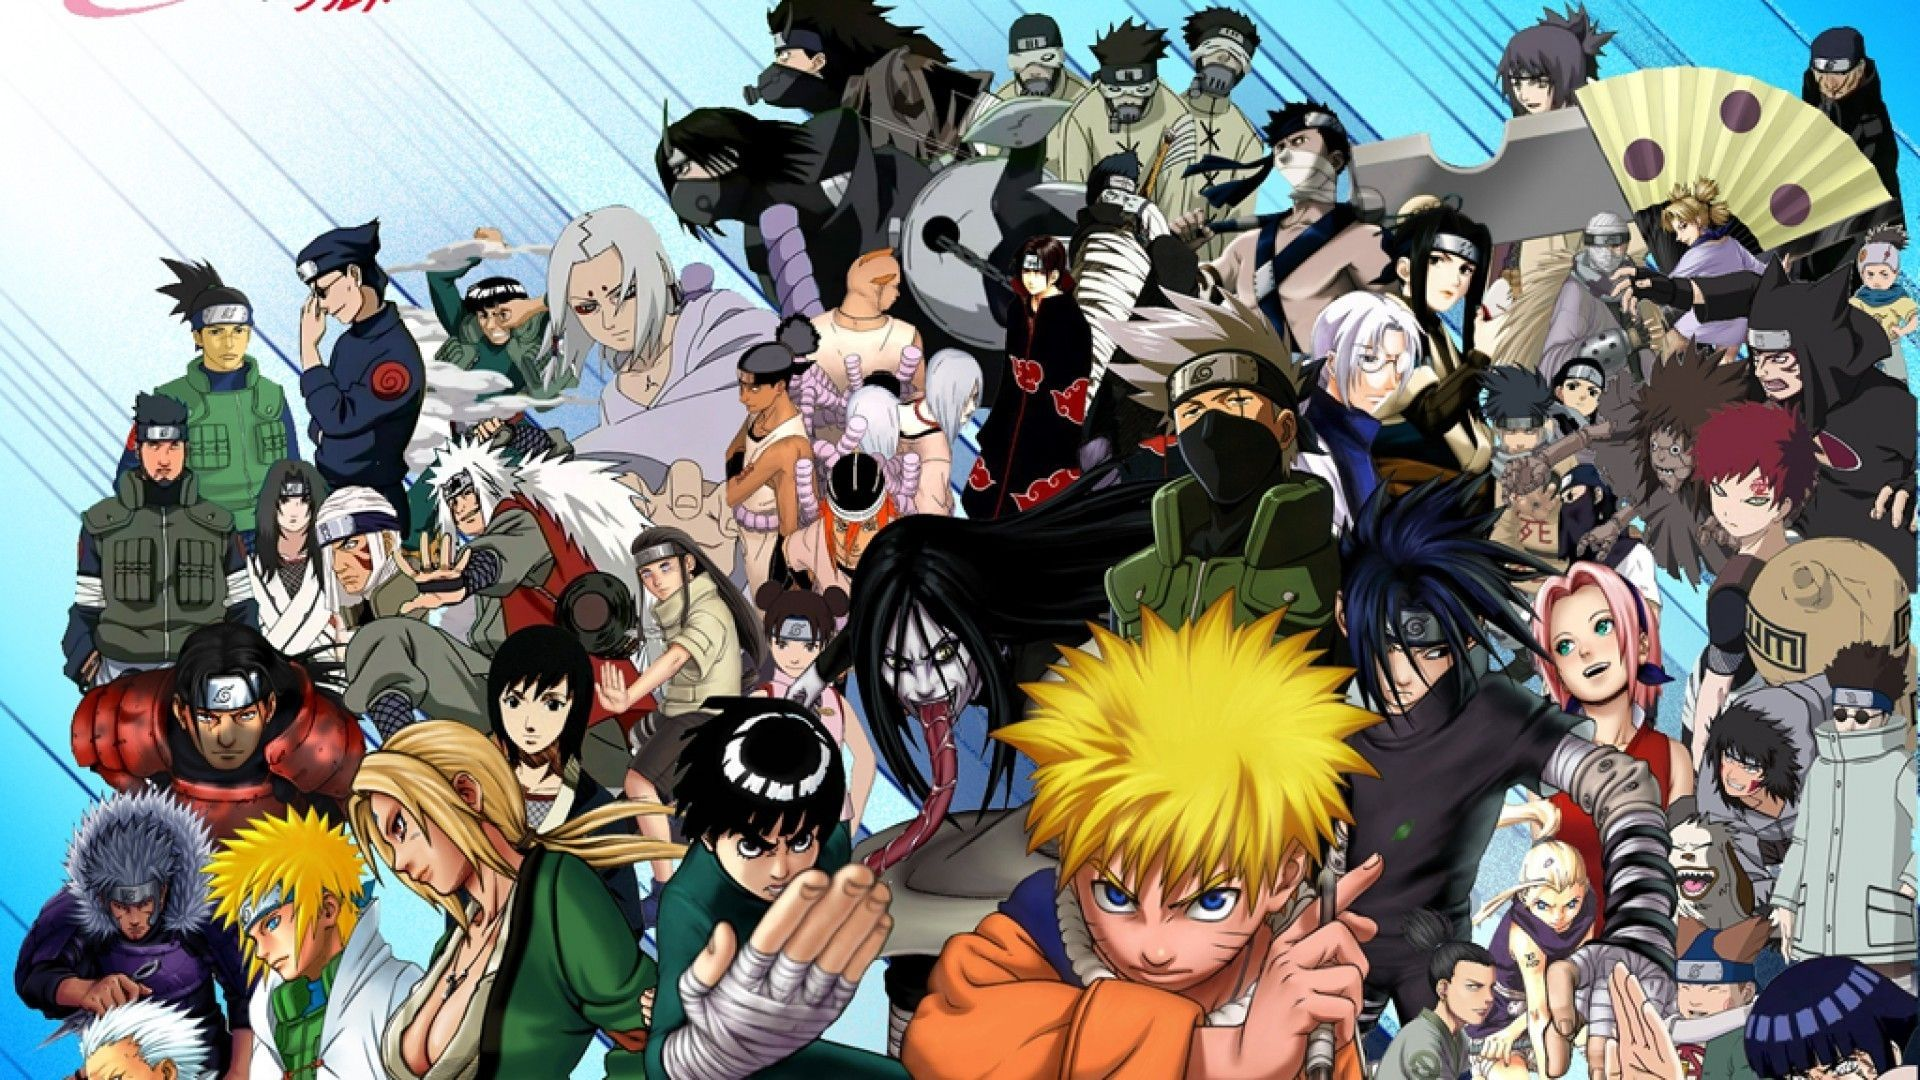 10 Most Popular Naruto All Characters Wallpaper Full Hd 1920 1080 For Pc Desktop Anime Anime Wallpaper Naruto Wallpaper Anime all in wallpaper